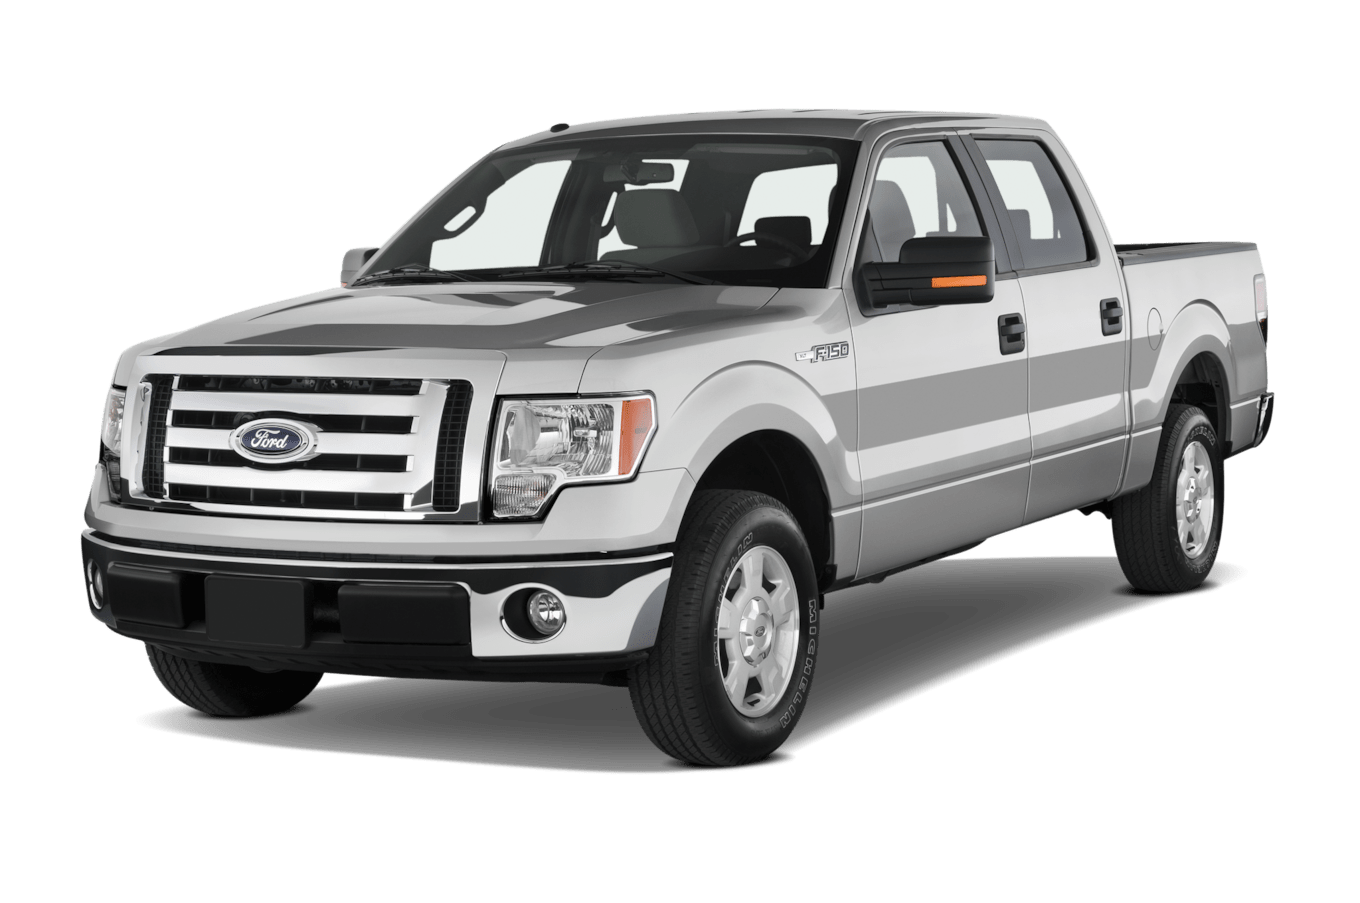 medium resolution of 2010 ford f 150 reviews research f 150 prices specs ford f 150 4 6l engine diagram car tuning